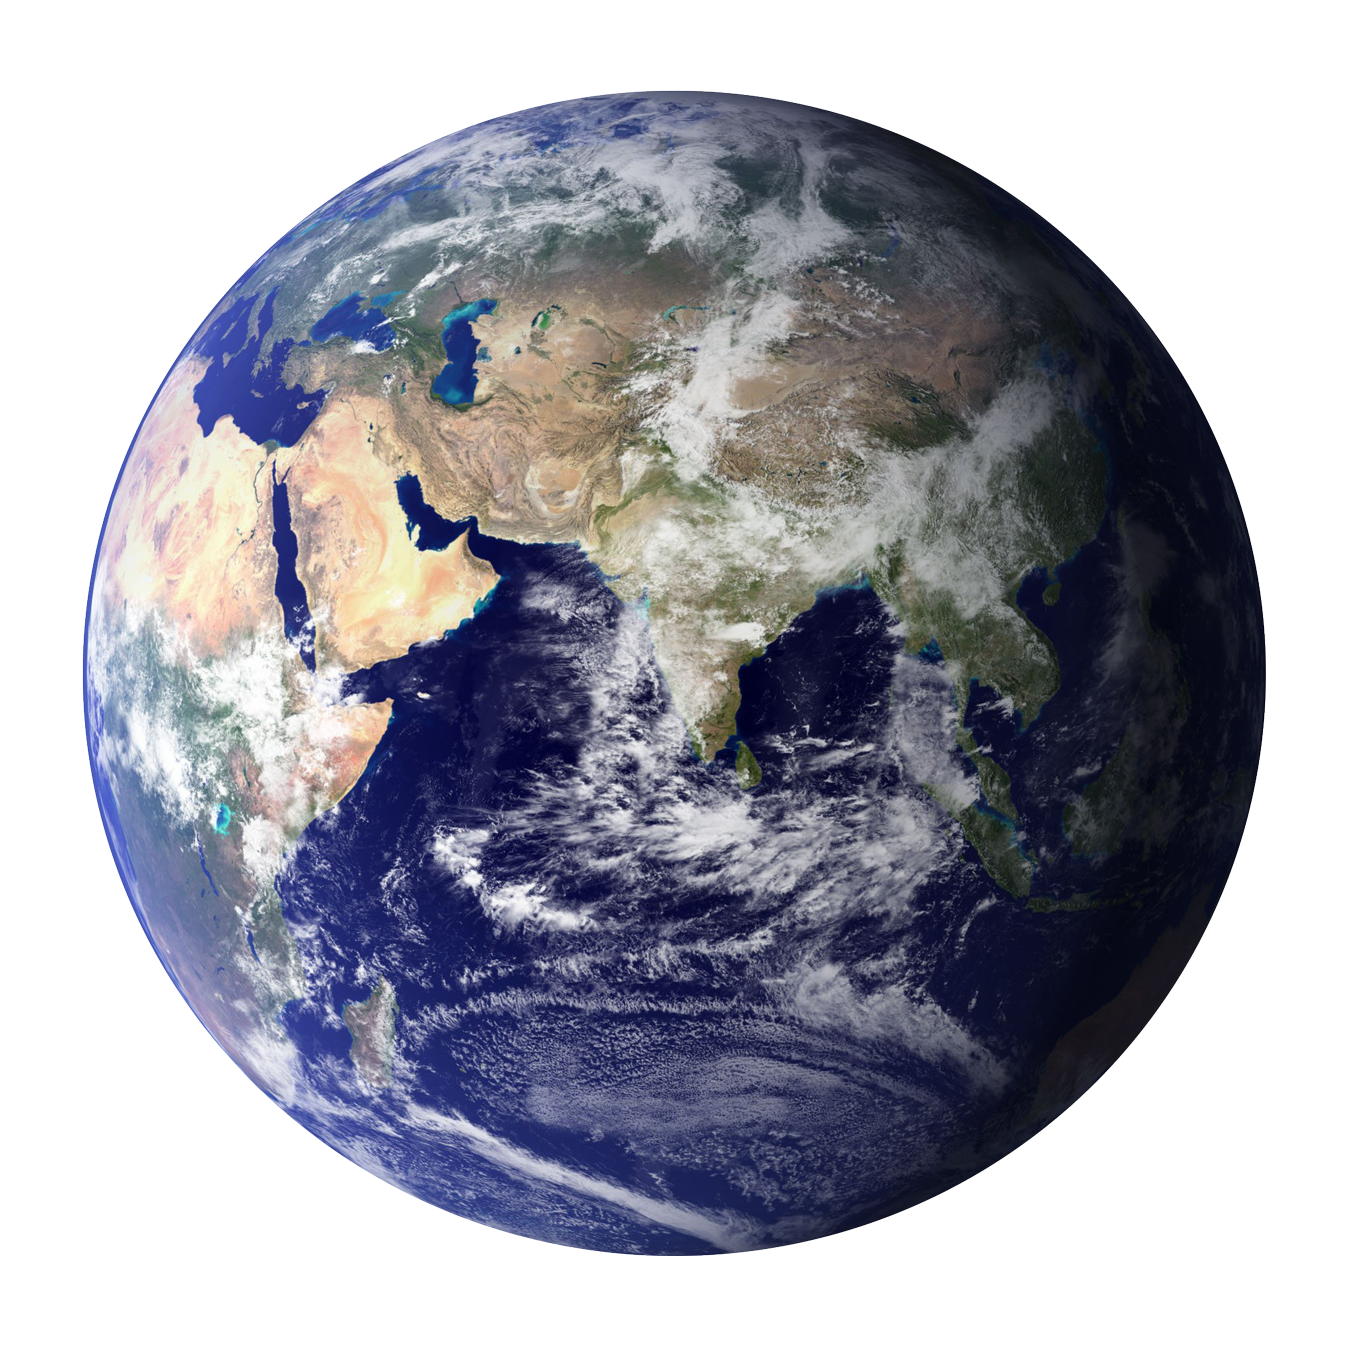 earth planet globe world transparent png image pngpix #11704